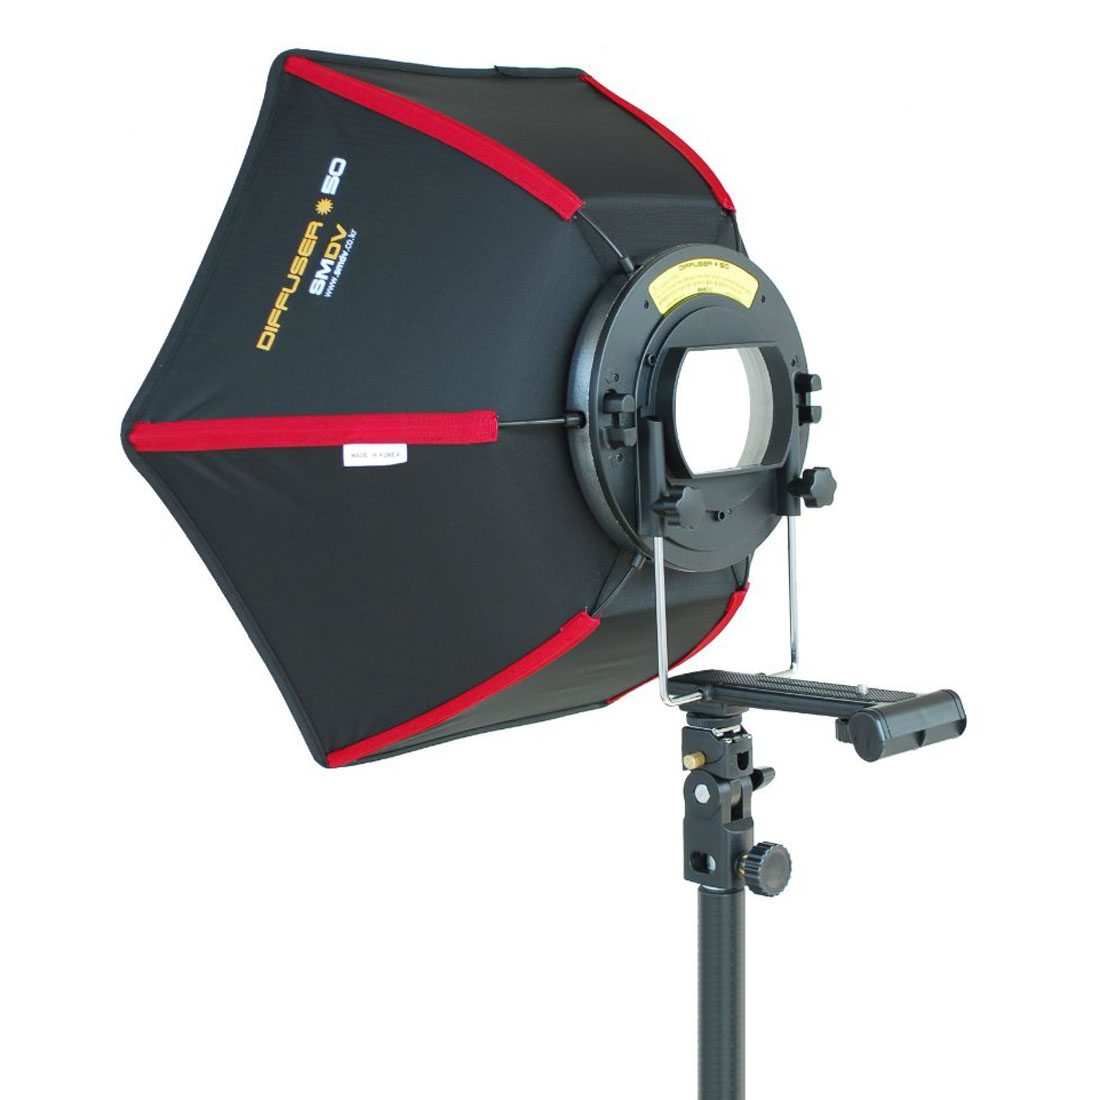 Softbox SMDV speedbox-50 hexagonal